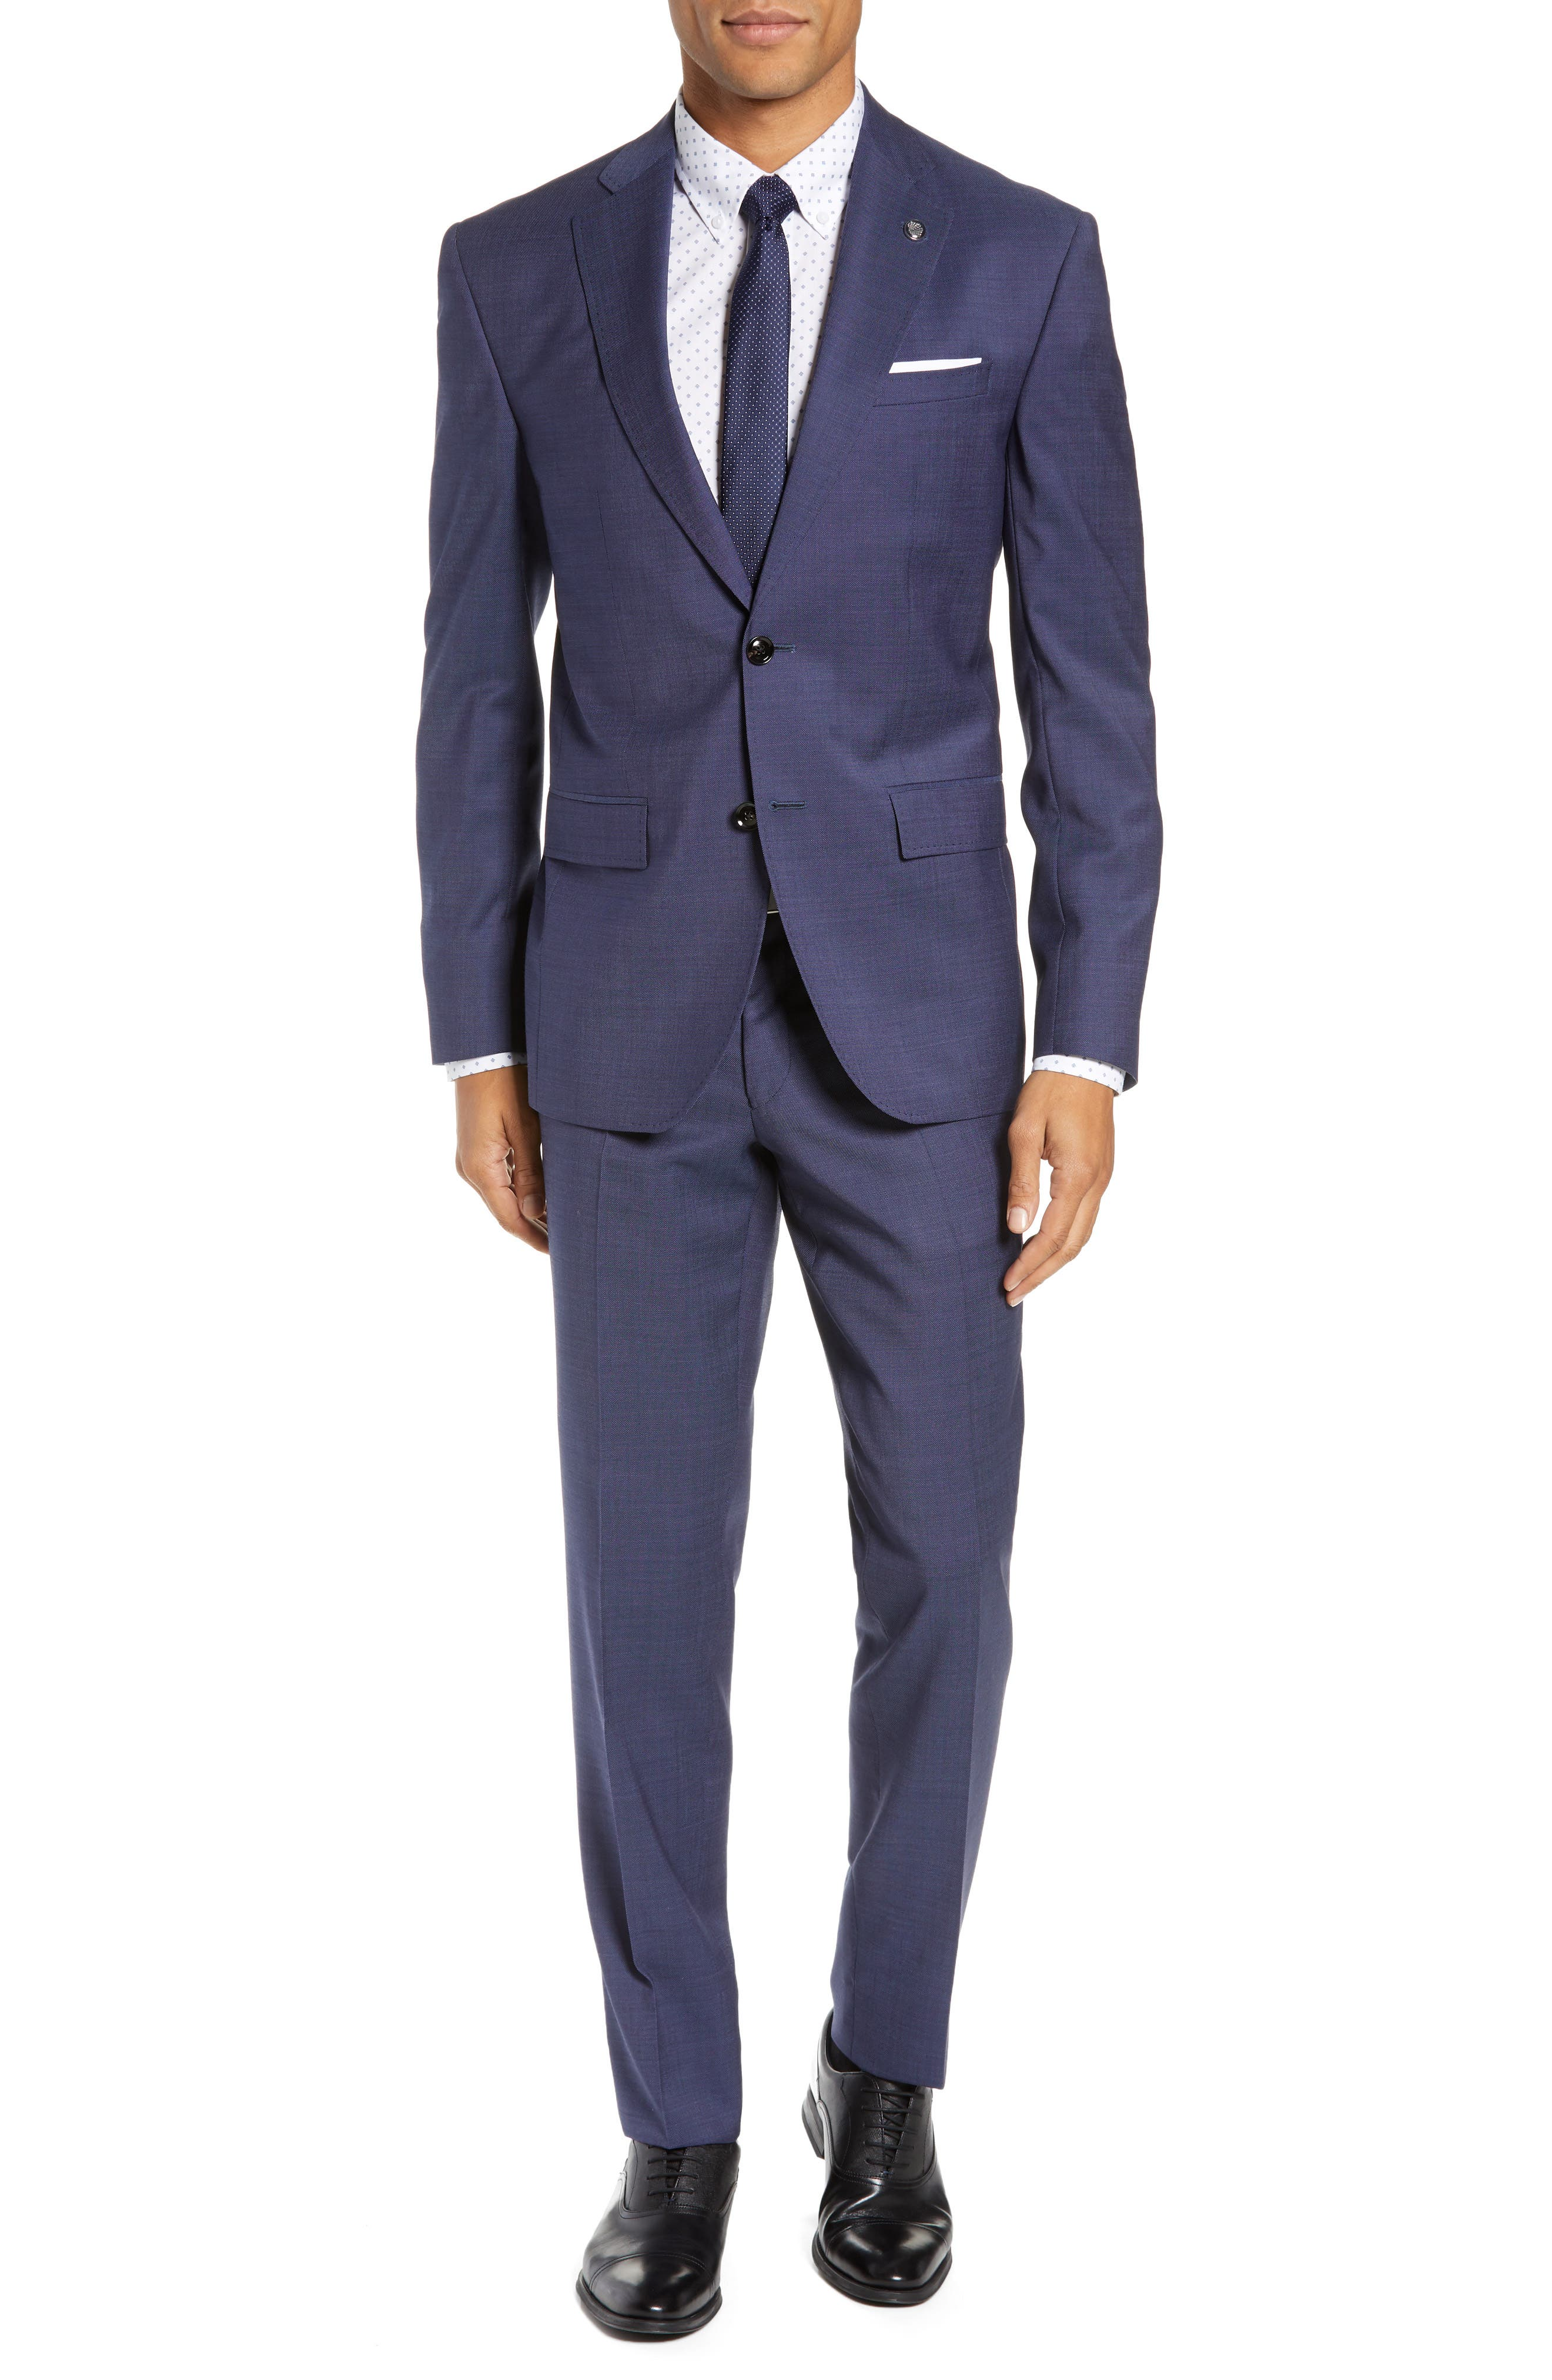 TED BAKER LONDON, Roger Slim Fit Solid Wool Suit, Main thumbnail 1, color, BLUE